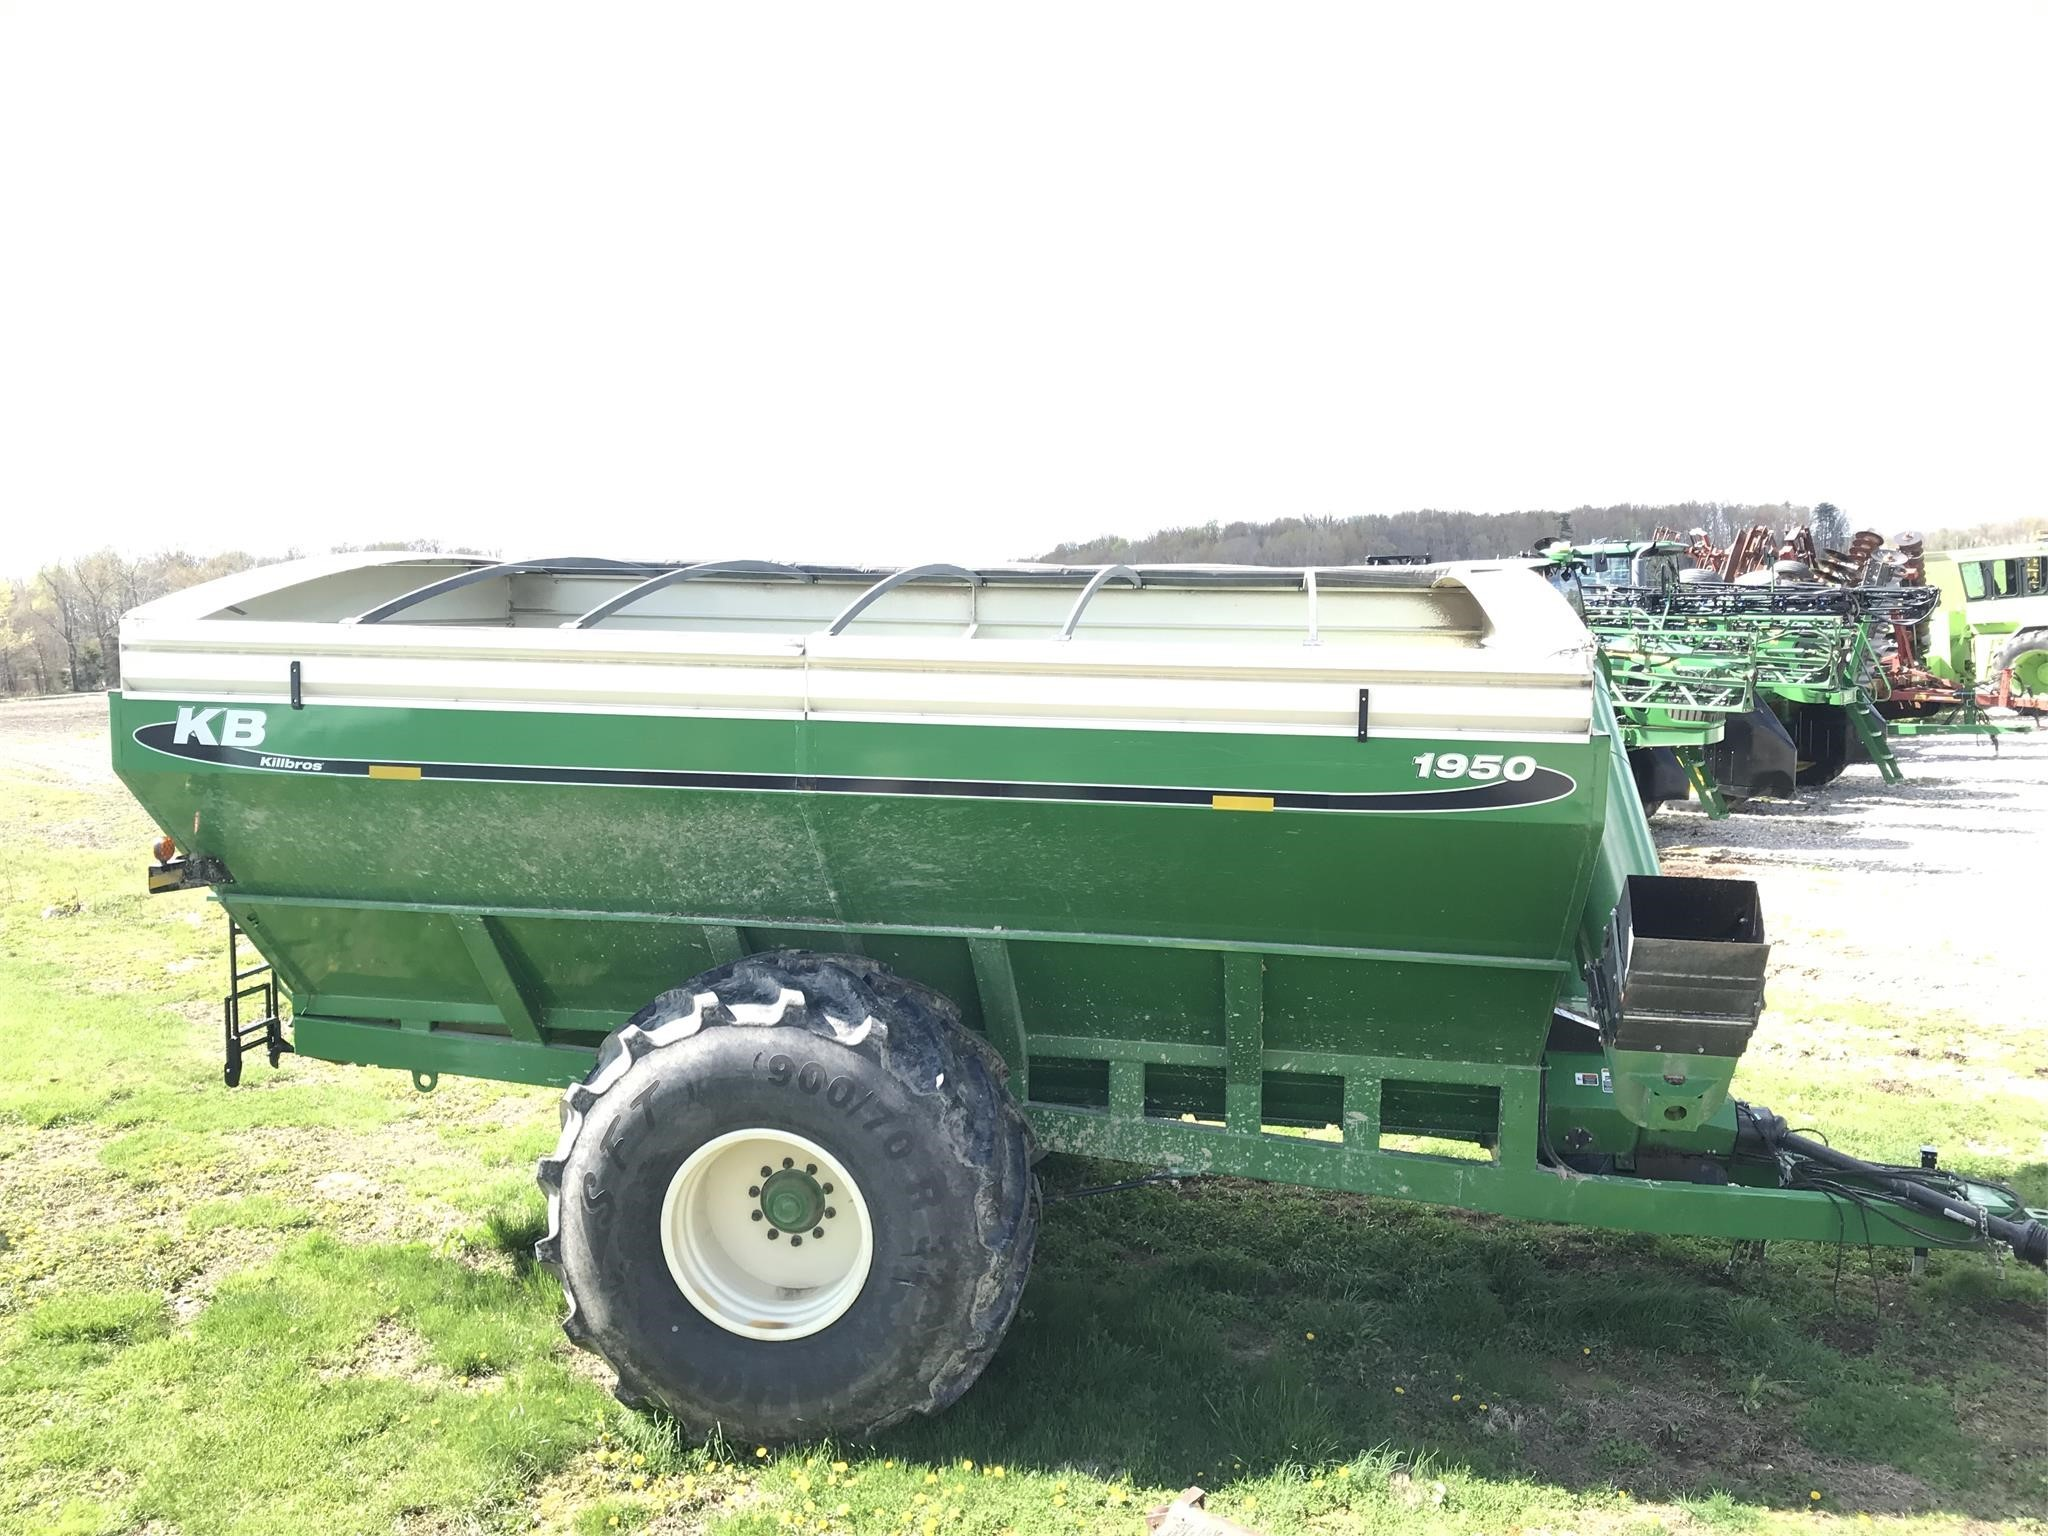 2018 Killbros 1950 Grain Cart